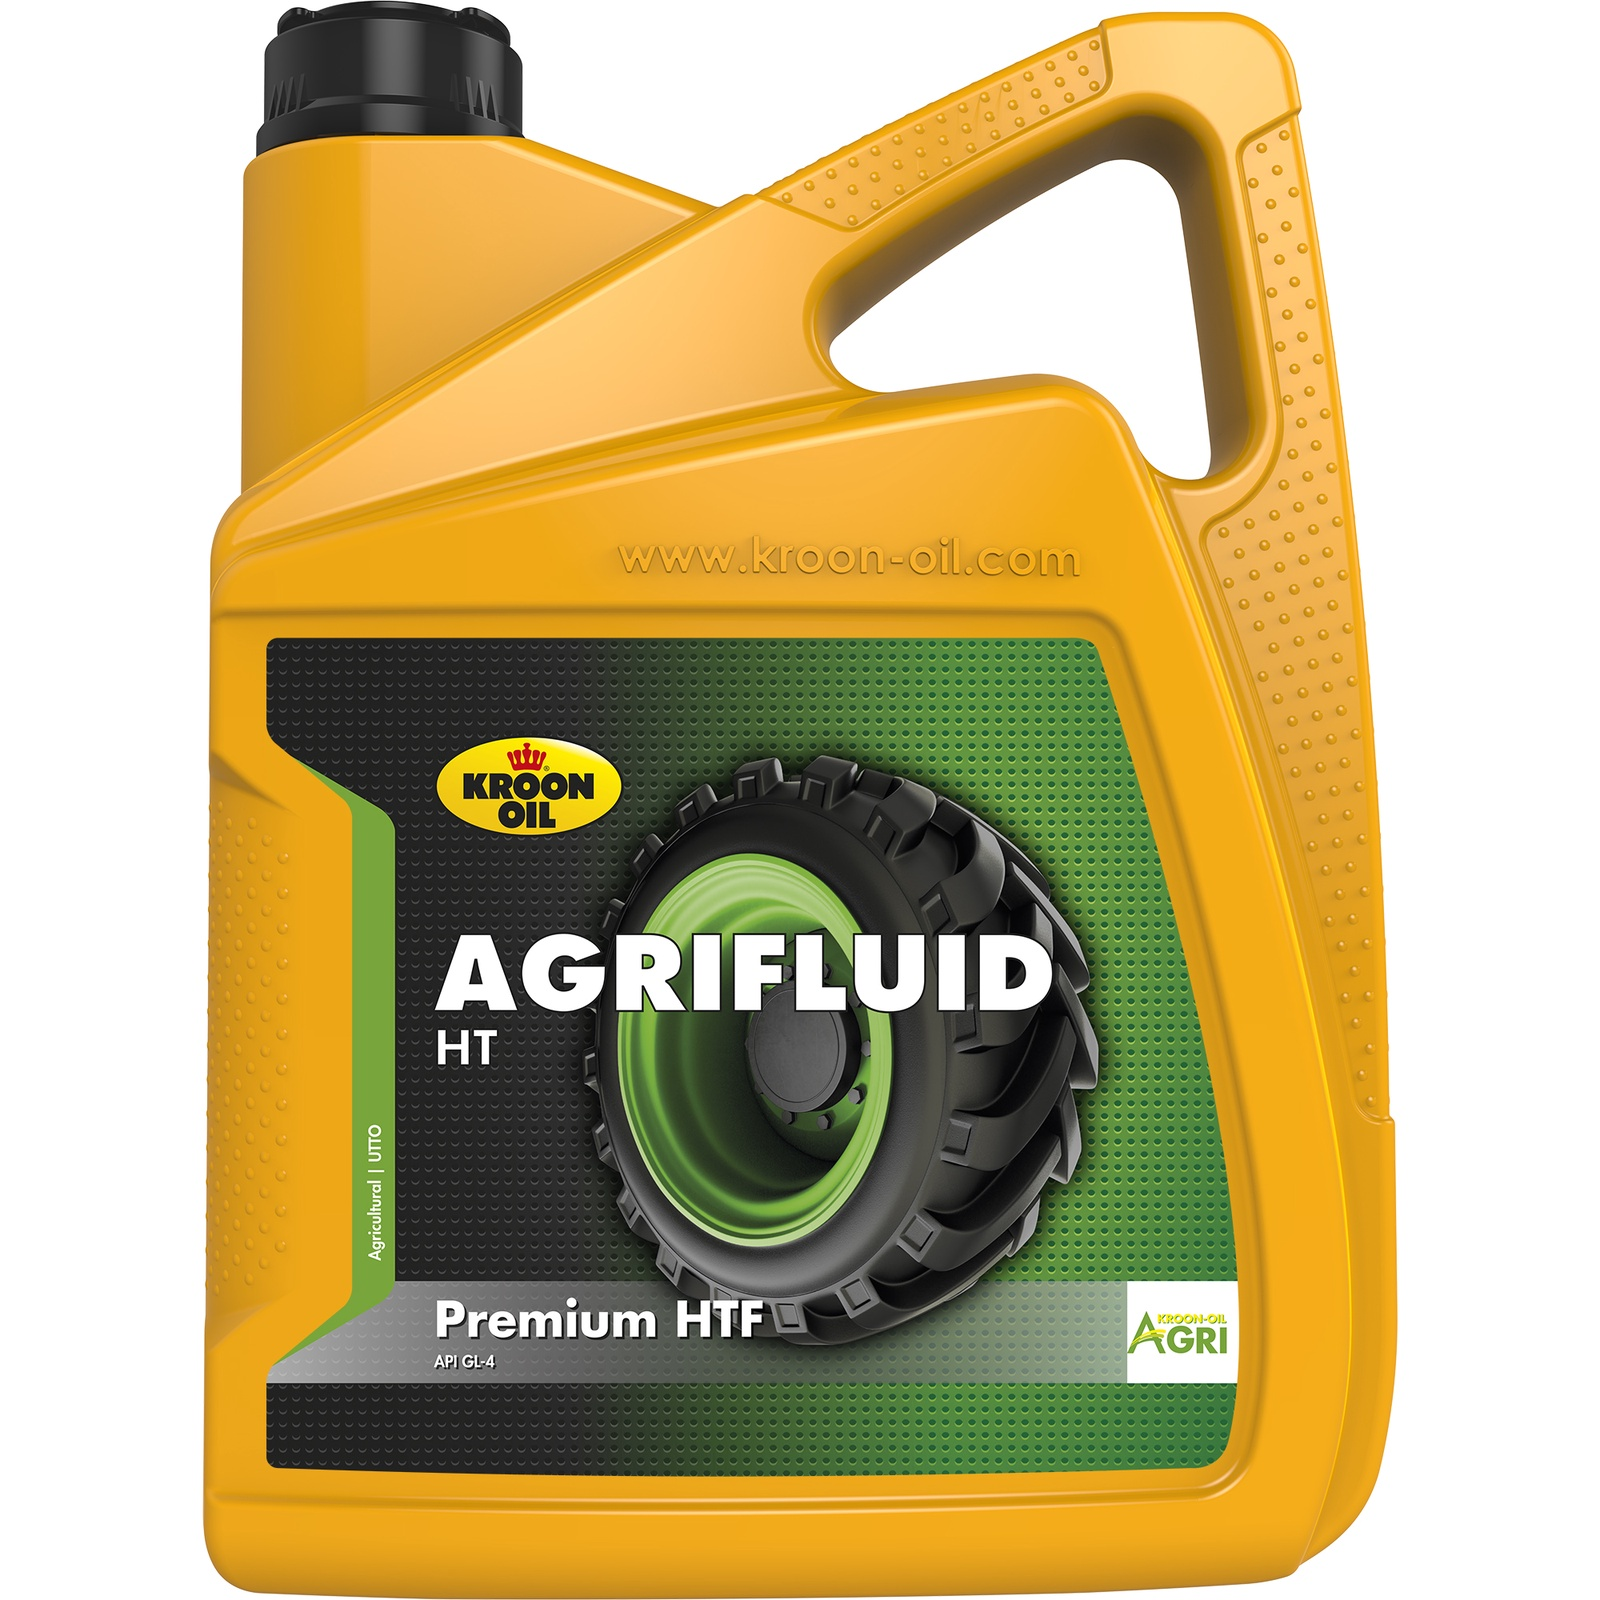 Kroon-oil AGRIFLUID HT